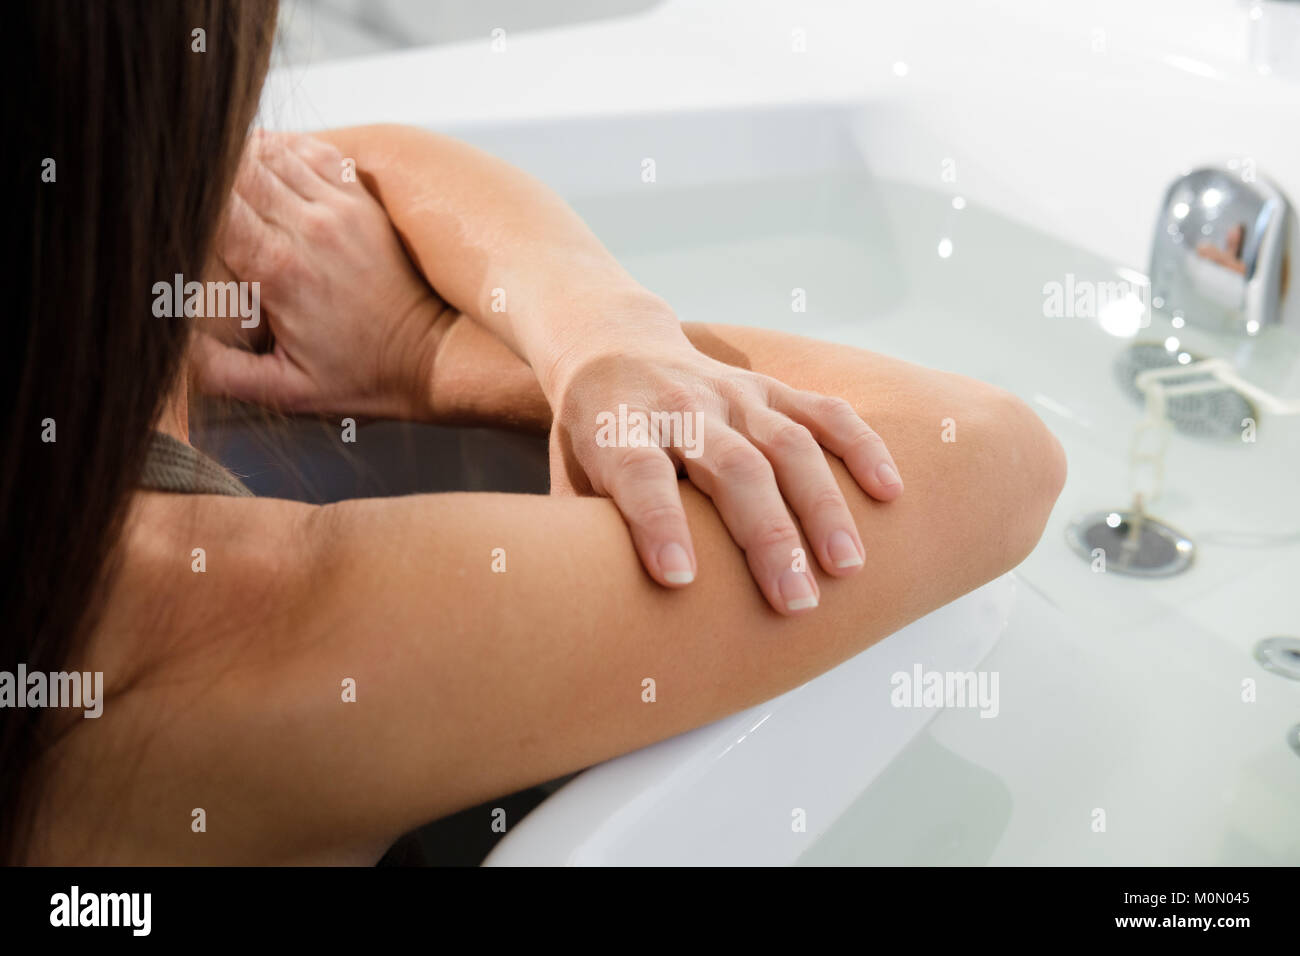 woman relaxing receiving water procedures in spa salon. female patient on hydrotherapy. Soft focus on hands. Copy - Stock Image